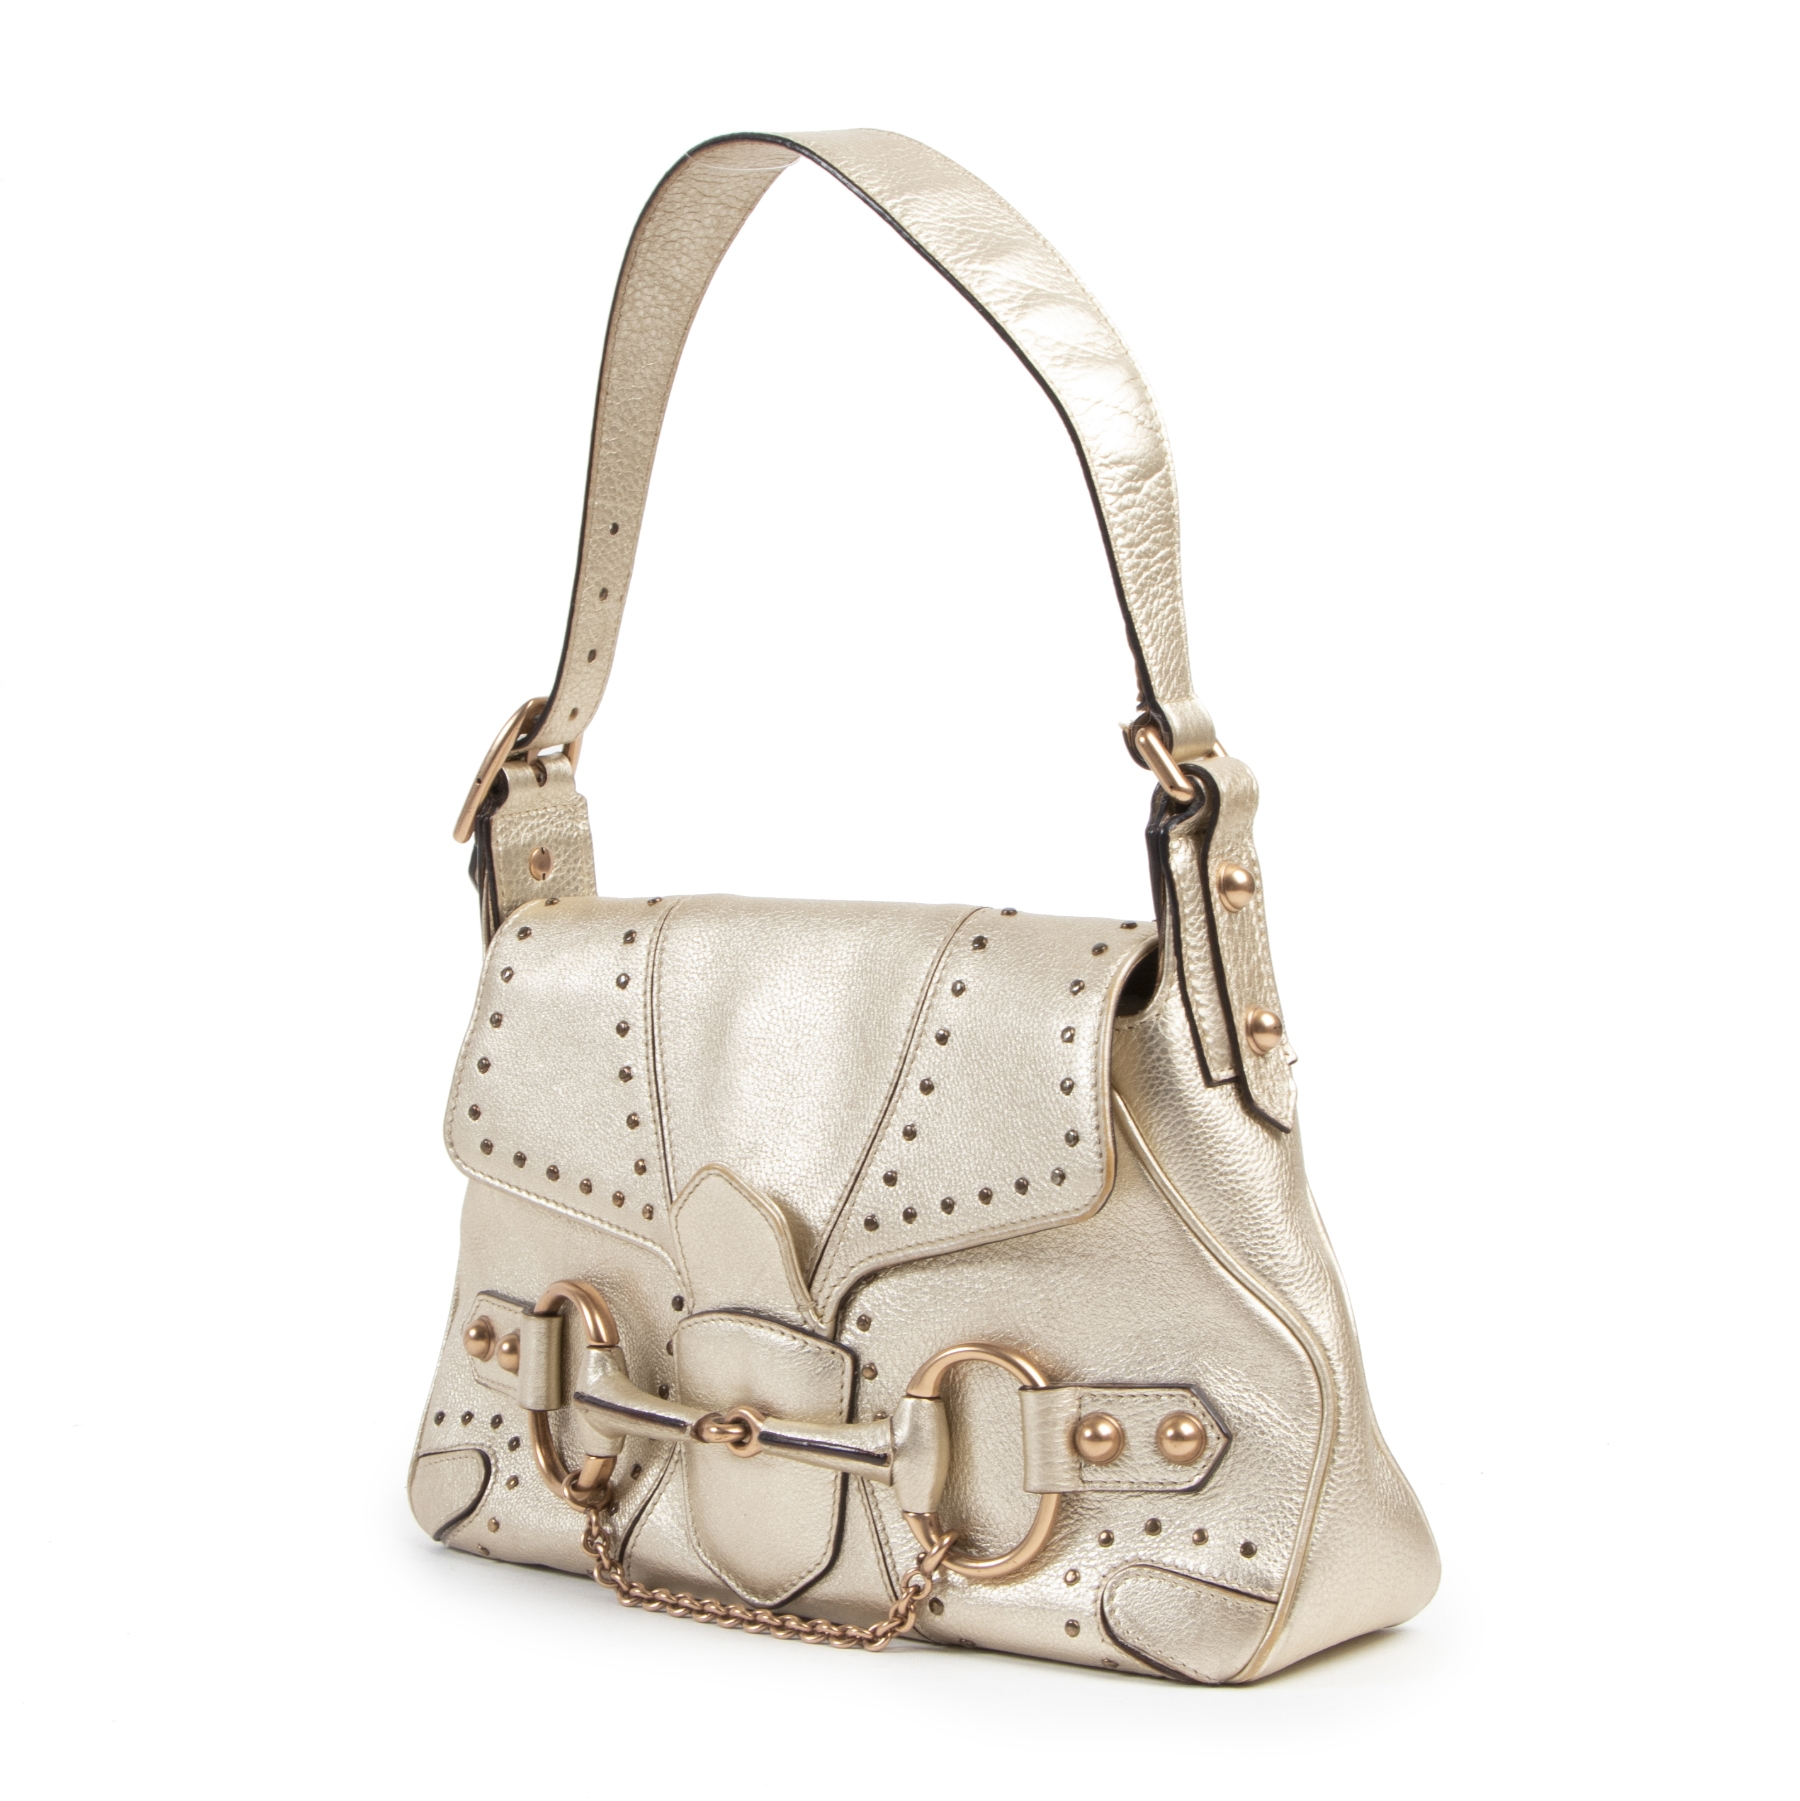 Authentieke tweedehands vintage Gucci Gold Mini Horsebit Bag koop online webshop LabelLOV